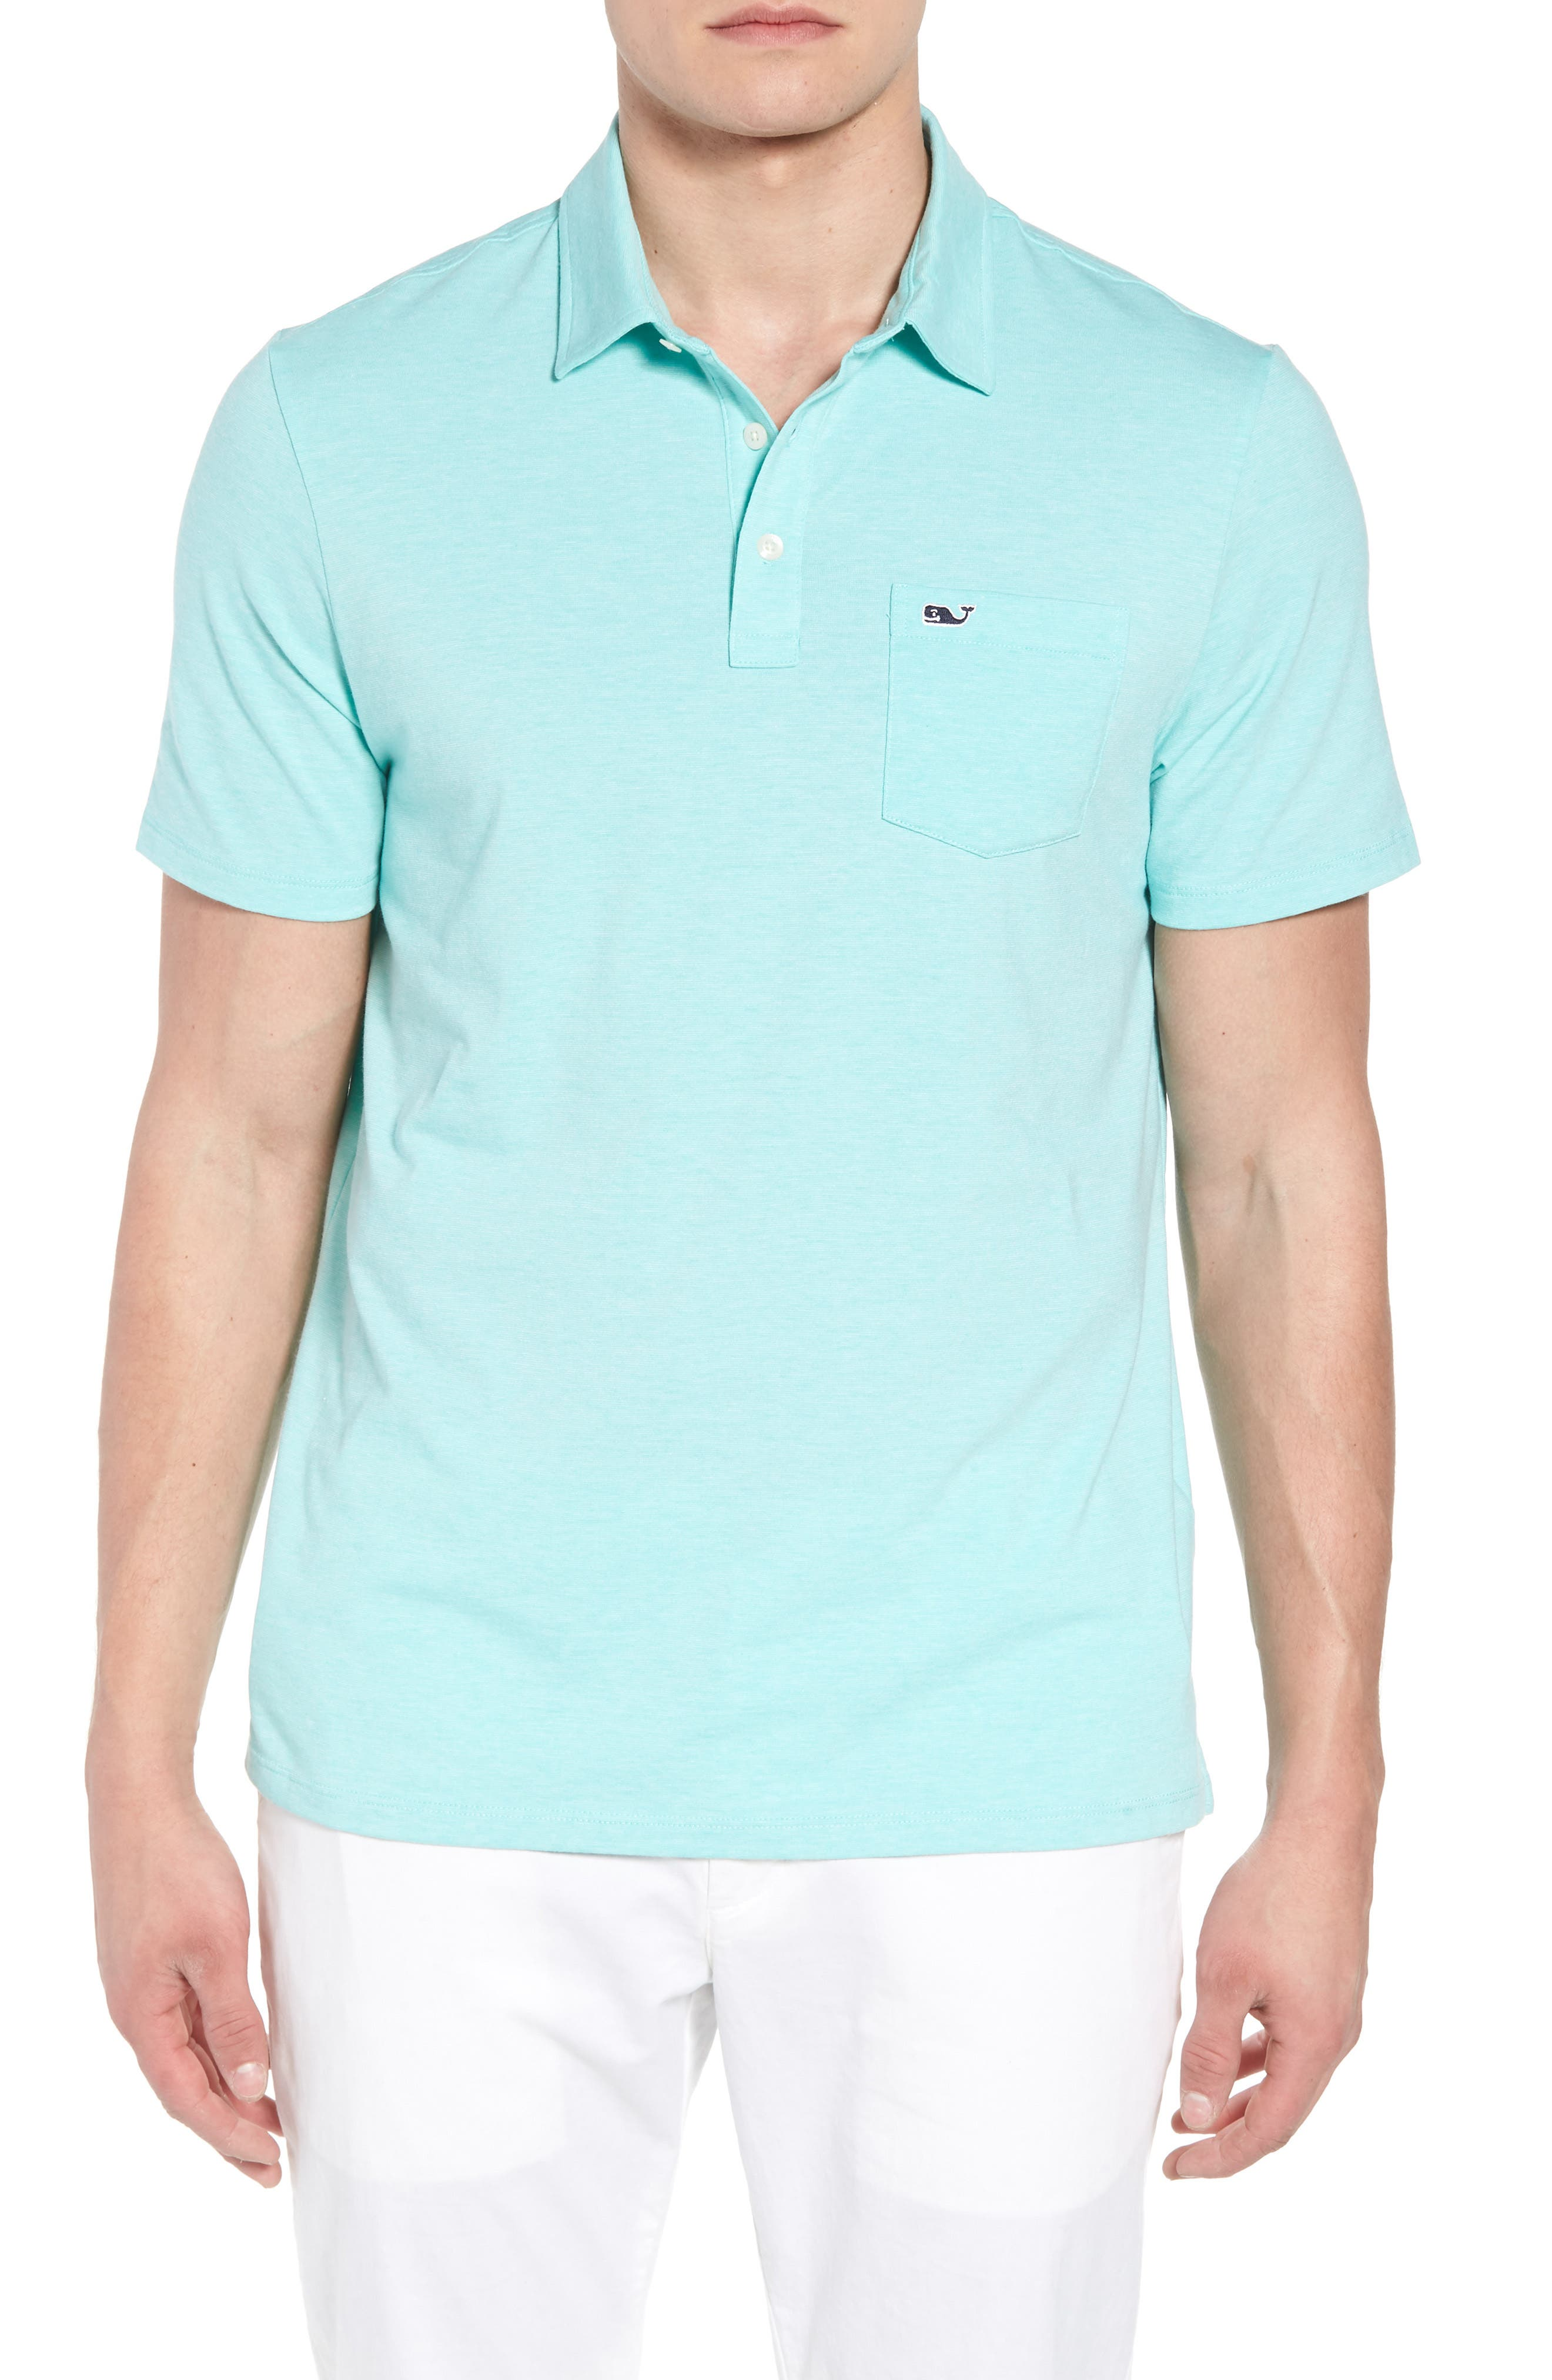 vineyard vines Edgartown Solid Stretch Polo